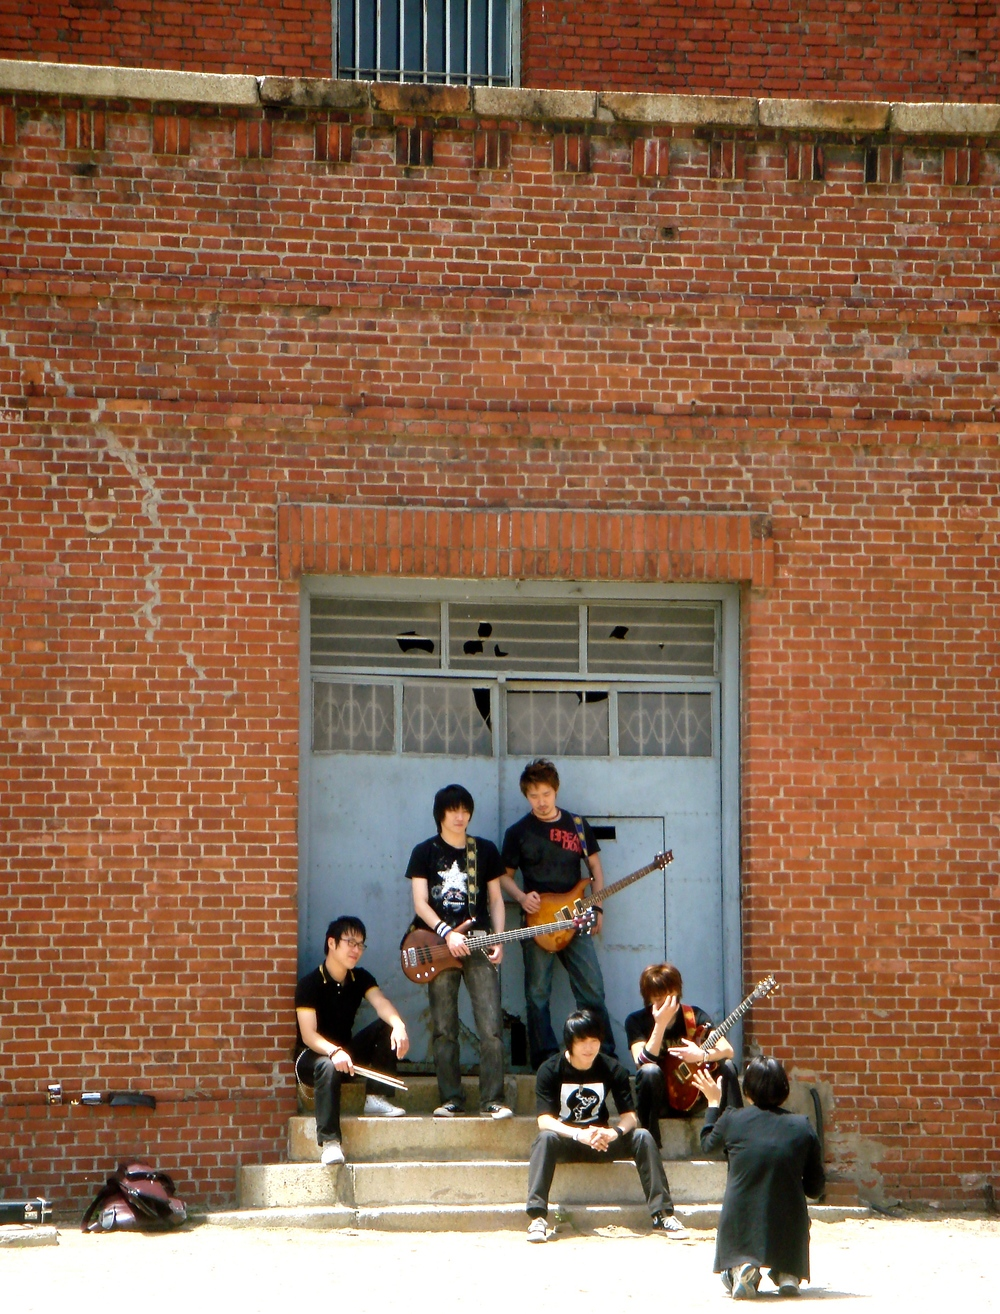 A boy band shooting their album cover at Seodaemun Prison in Seoul, South Korea